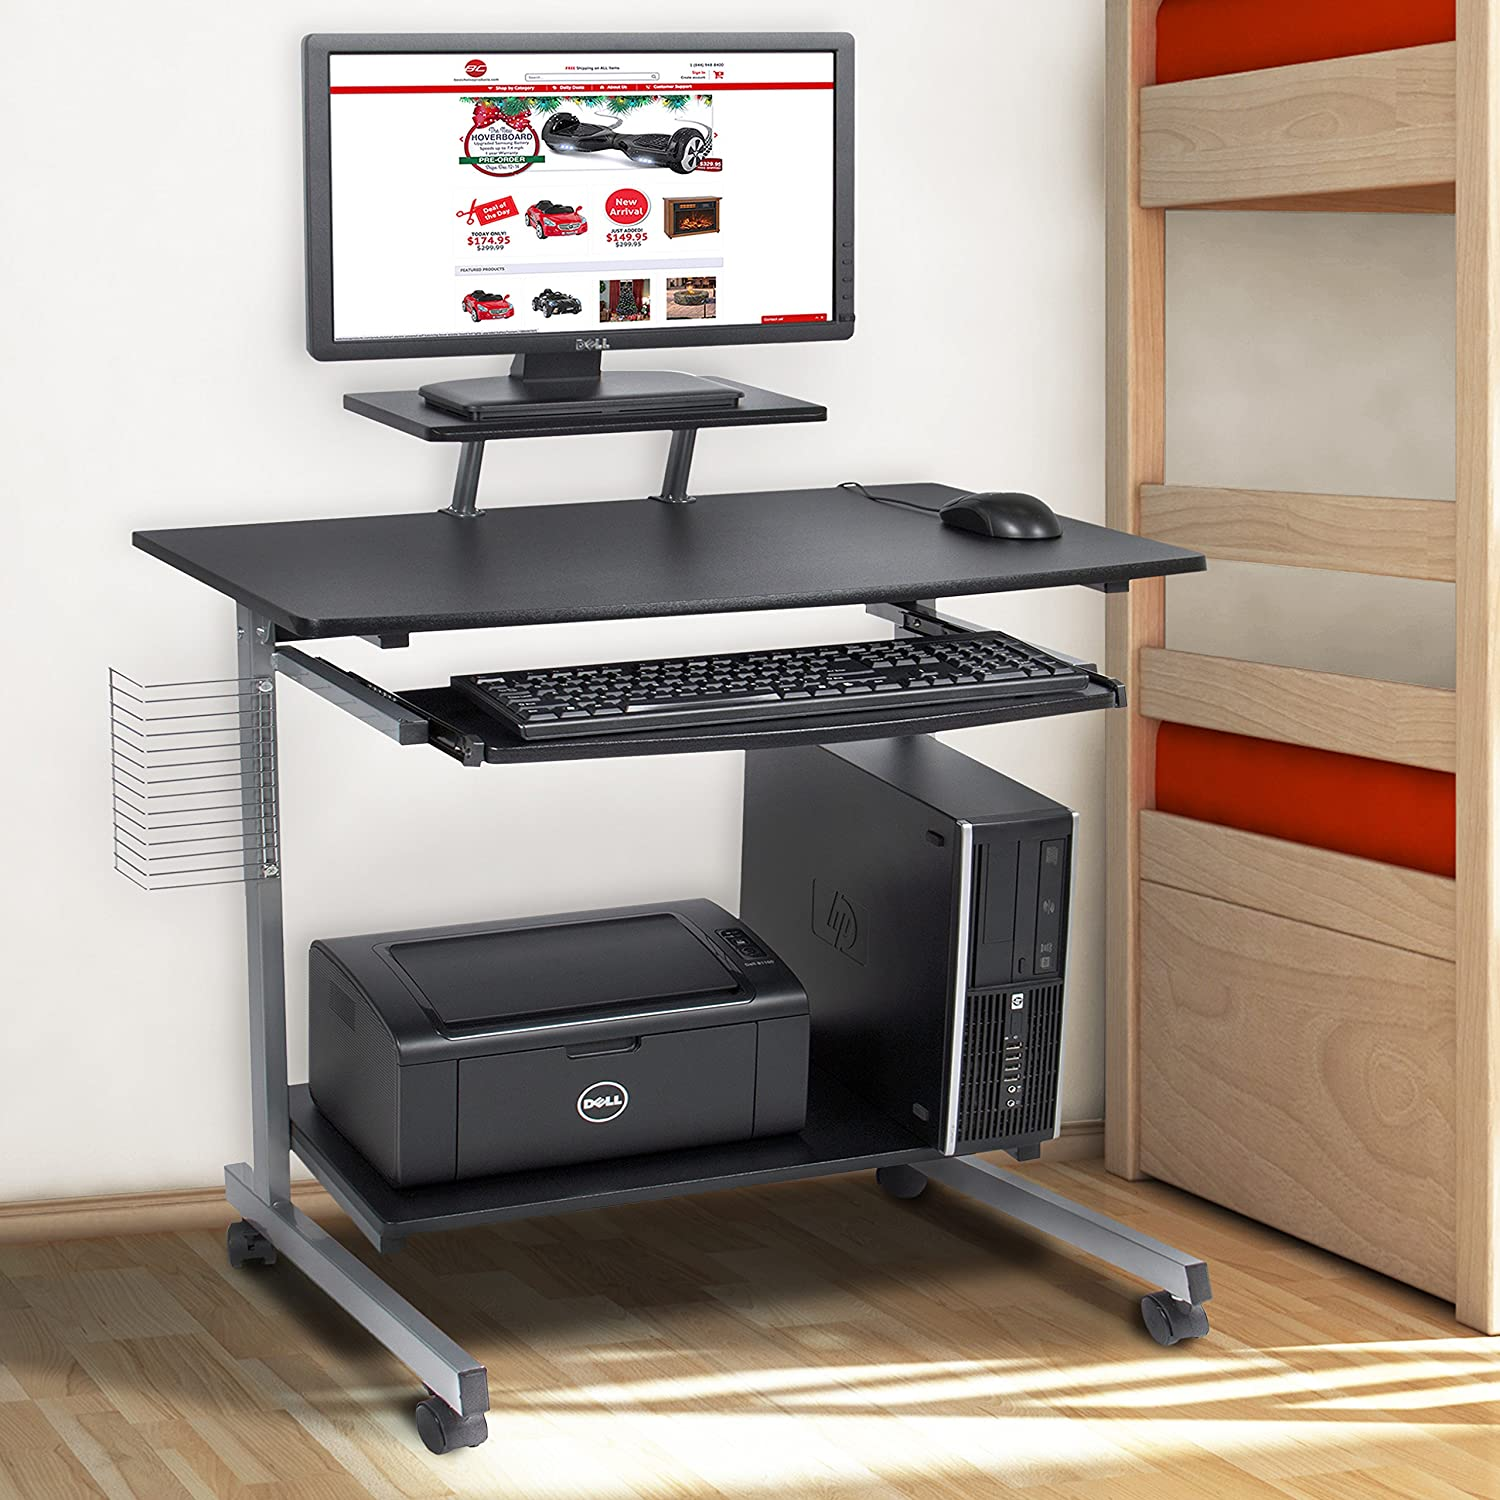 Amazon.com : Best Choice Products Computer Desk Cart PC Laptop Table Study  Portable Workstation Student Dorm Home Office : Office Products